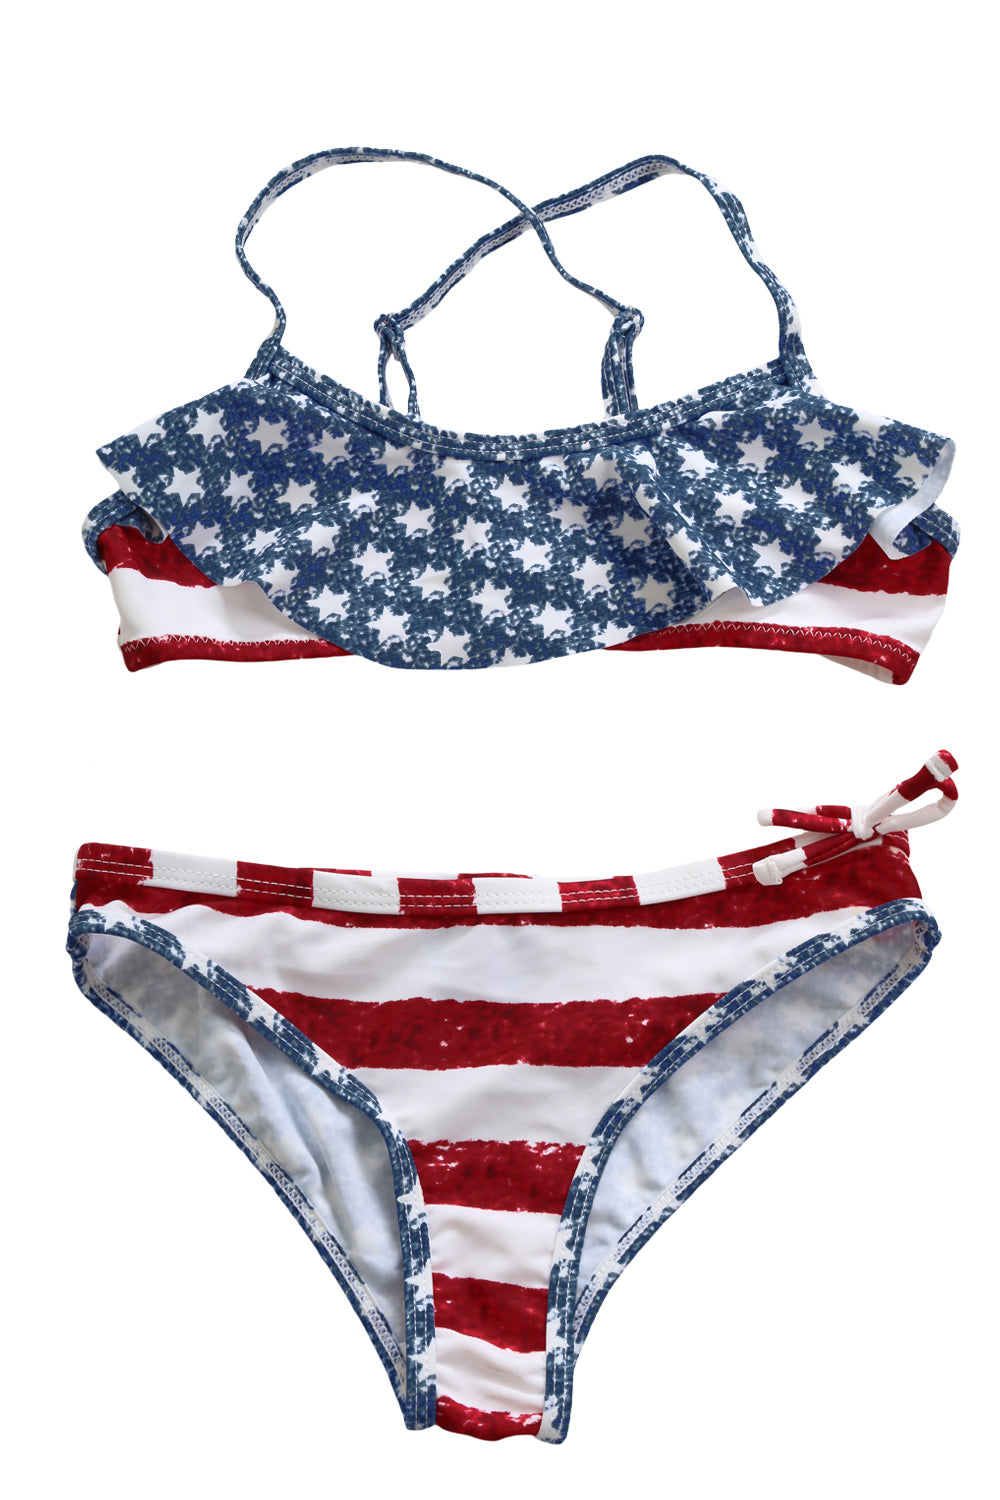 Stars & Stripes Flounce Bikini Swimsuit for Kids Girls Swimsuits Discount Designer Fashion Clothes Shoes Bags Women Men Kids Children Black Owned Business